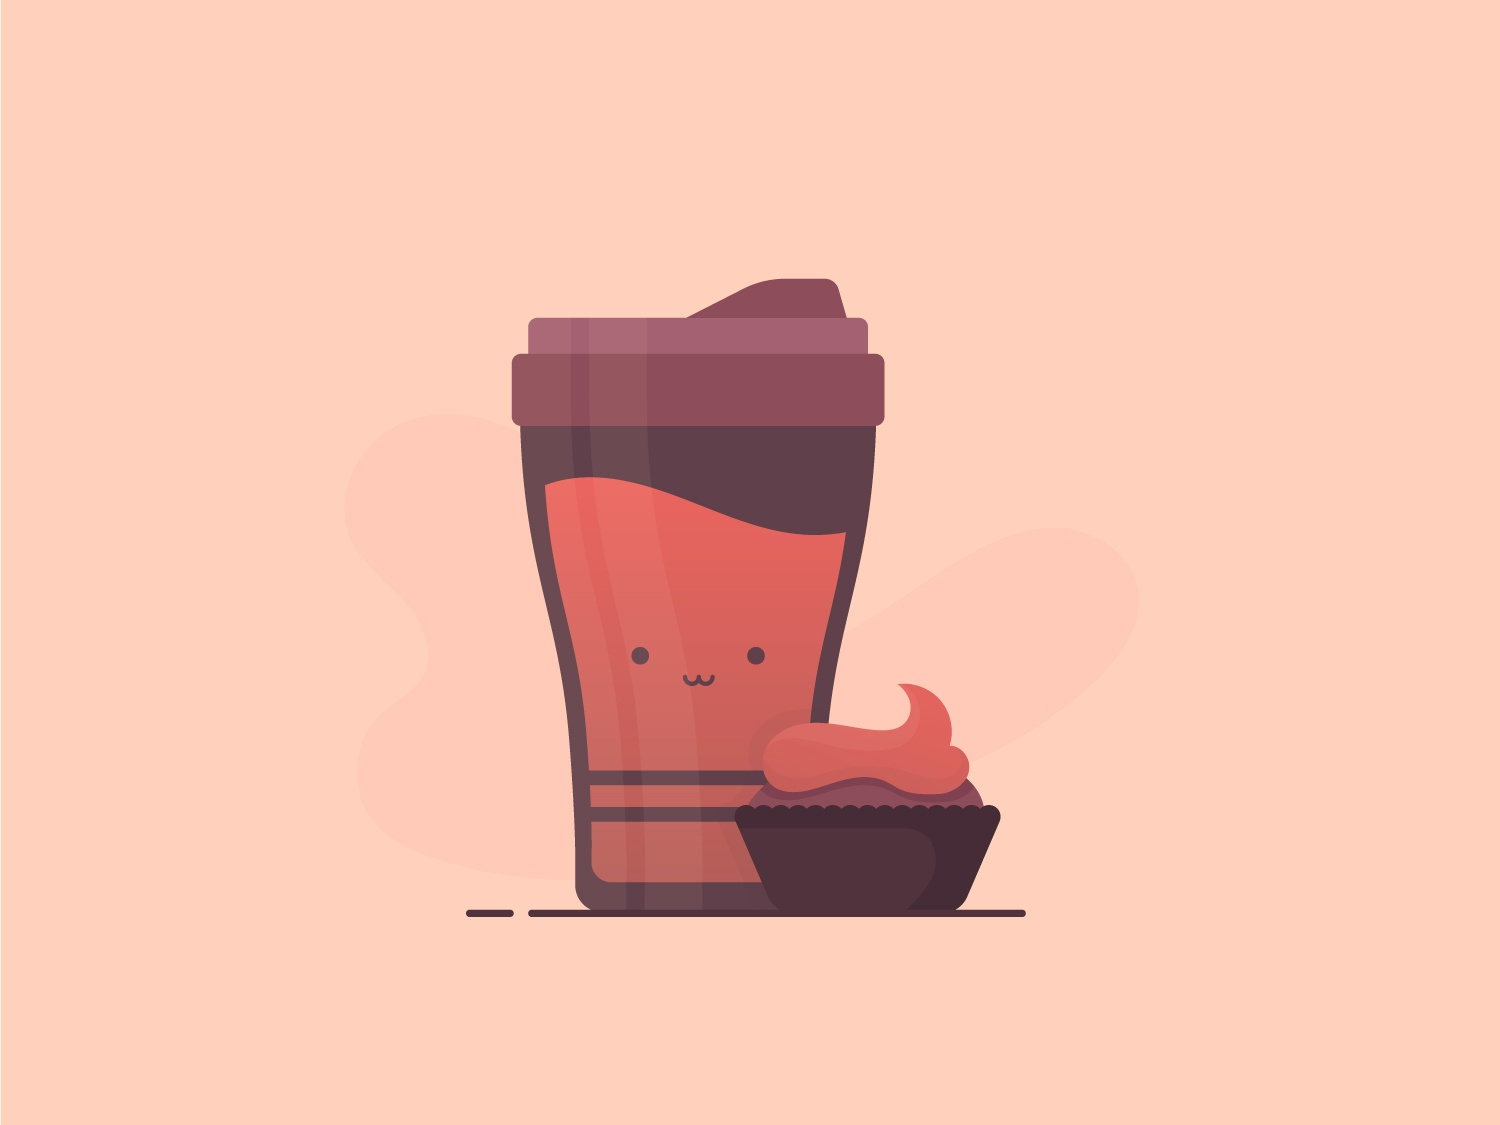 Coffee Cup illustration coffee cup cup bottle sweet meal breakfast cake cupcake coffe